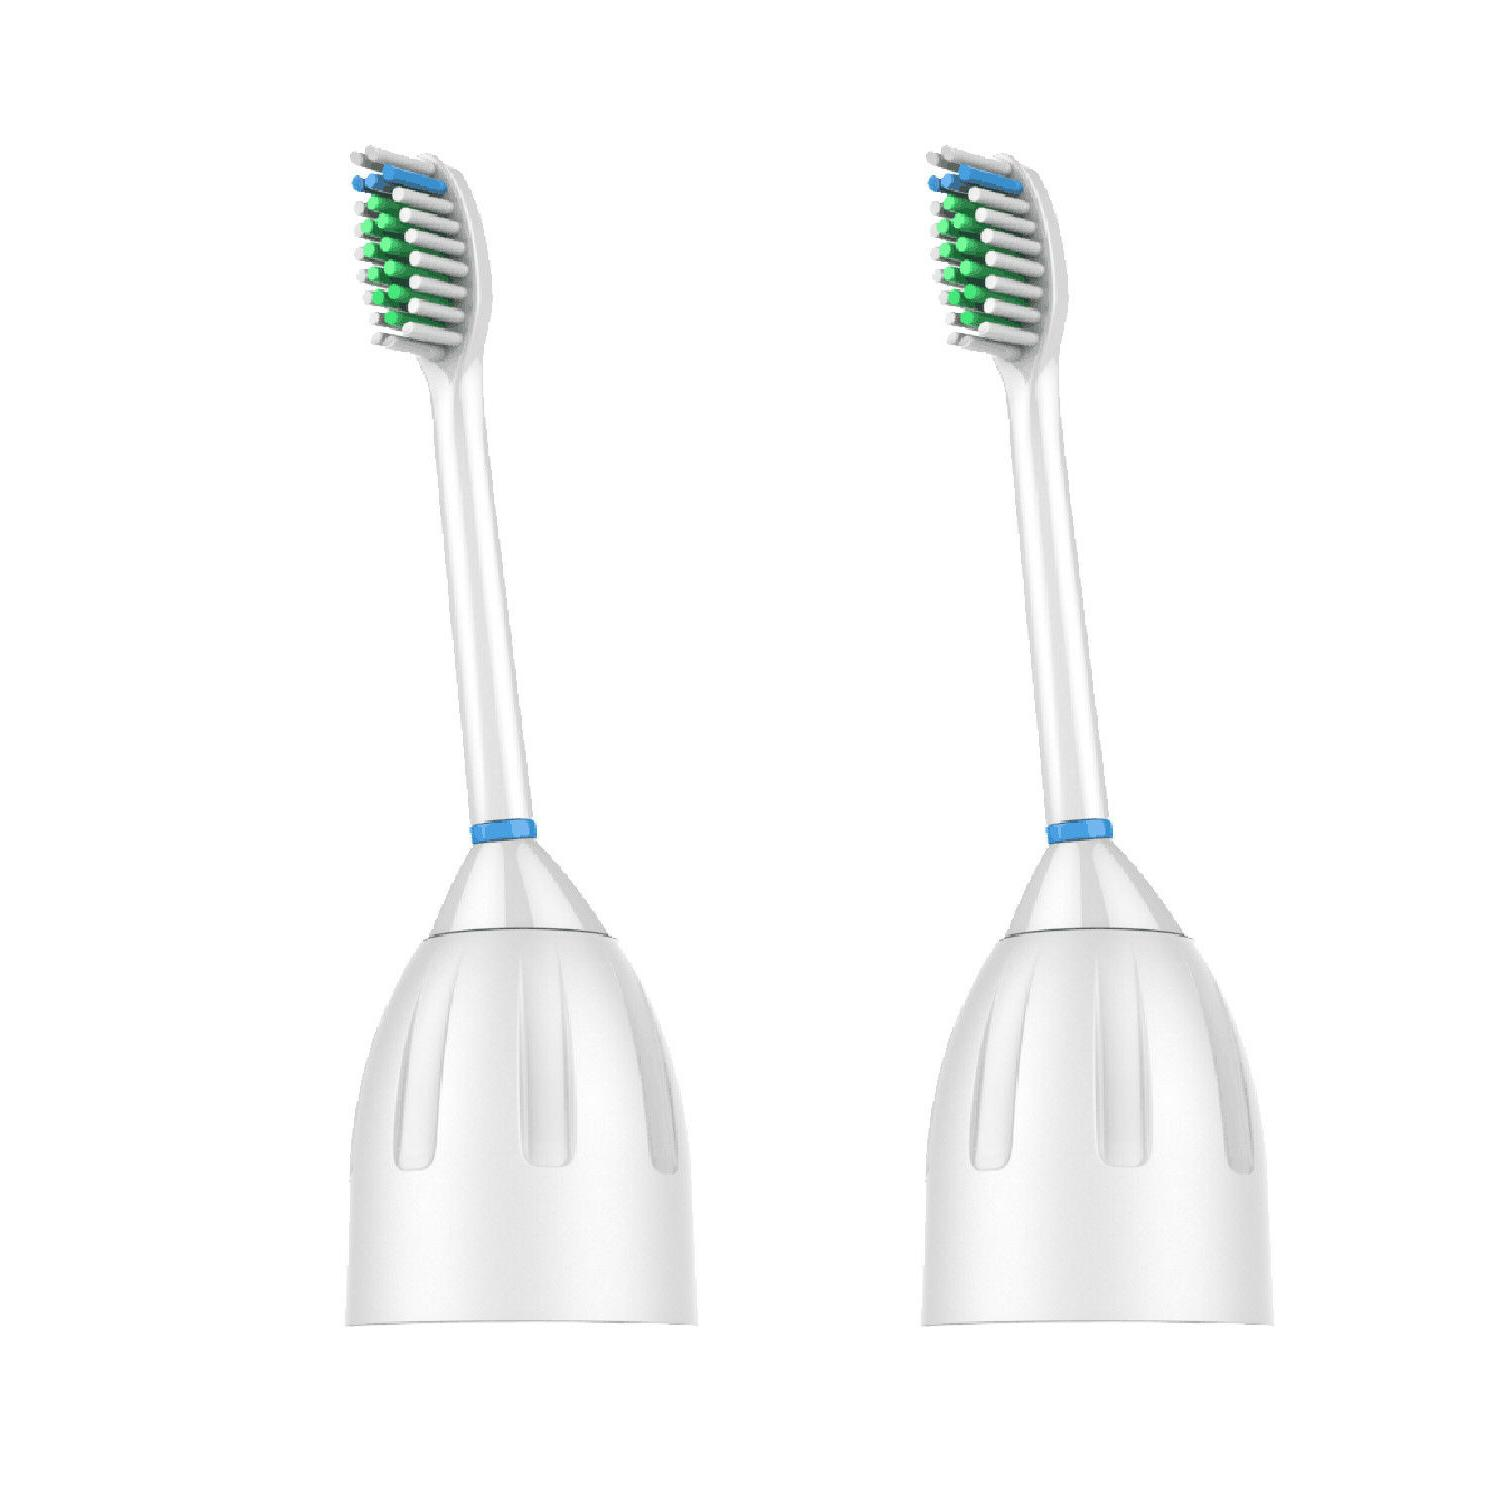 2X Generic Replacement Brush Heads for Philips Sonicare E se